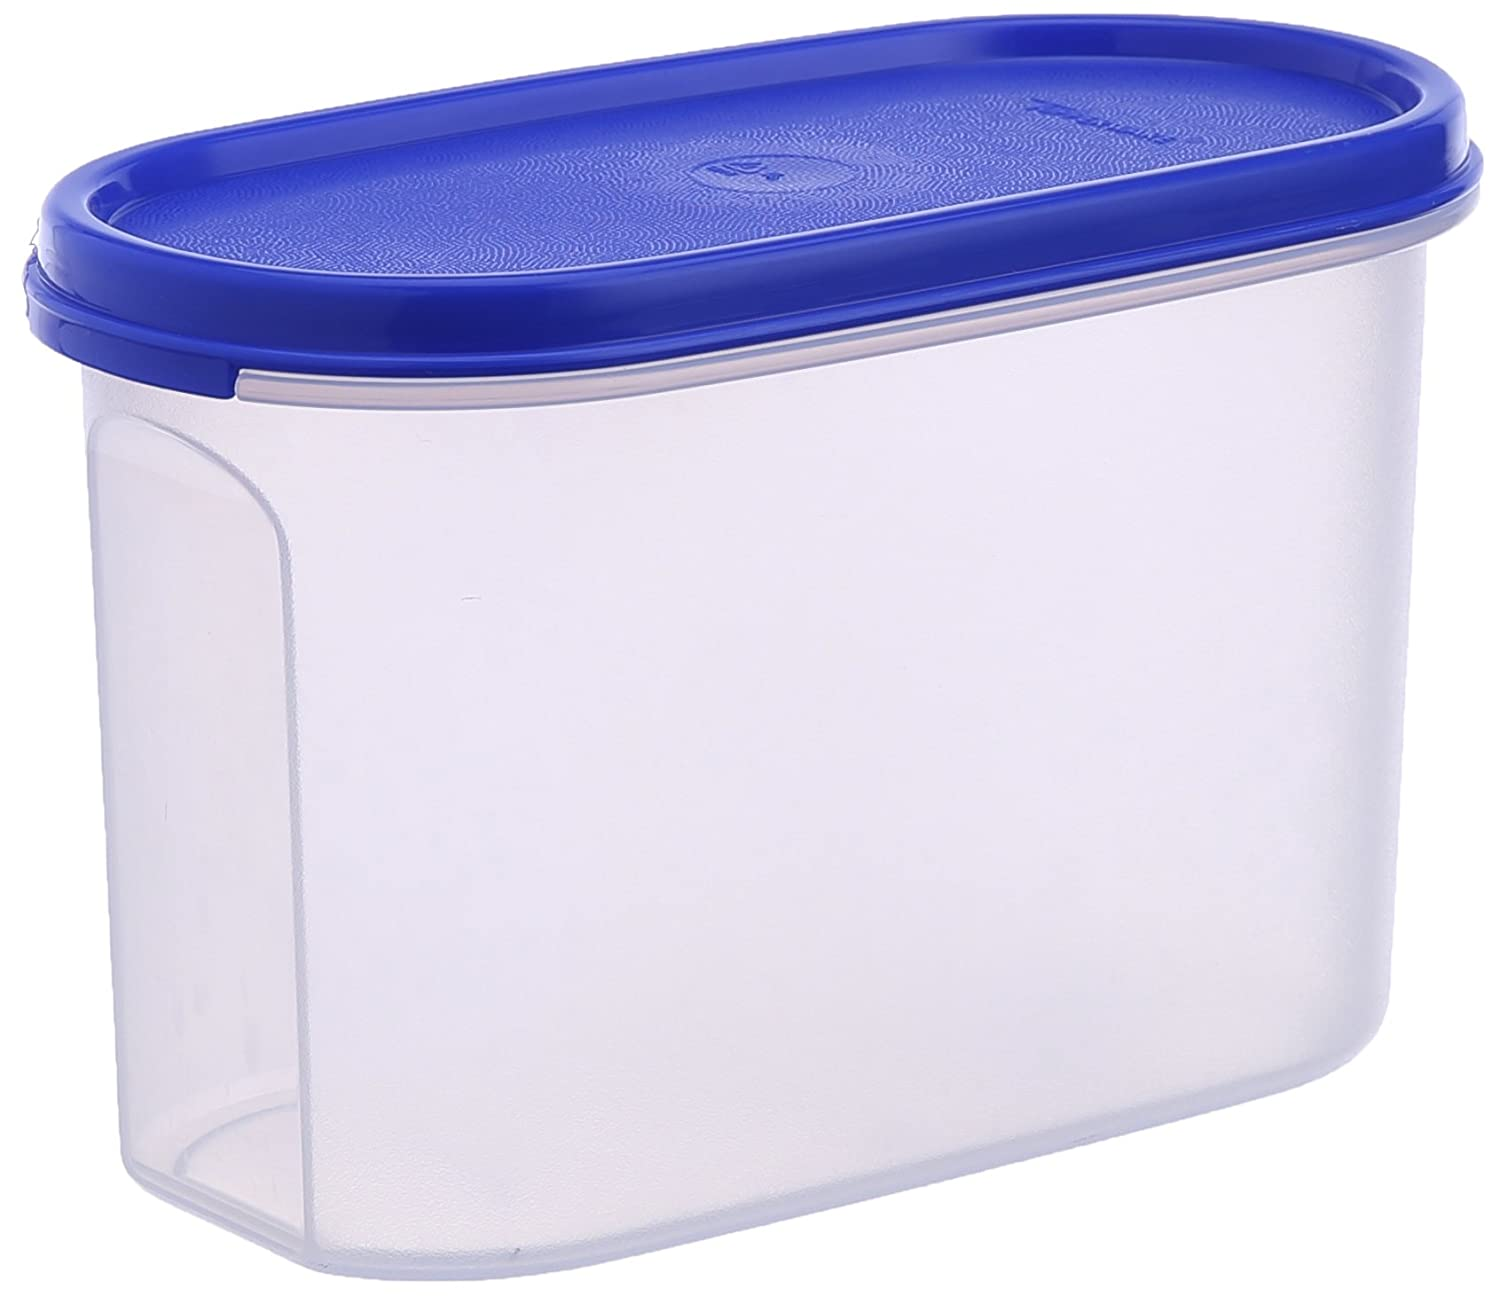 Tupperware Modular Mates Oval 2 Storage Box 1 1 Litres